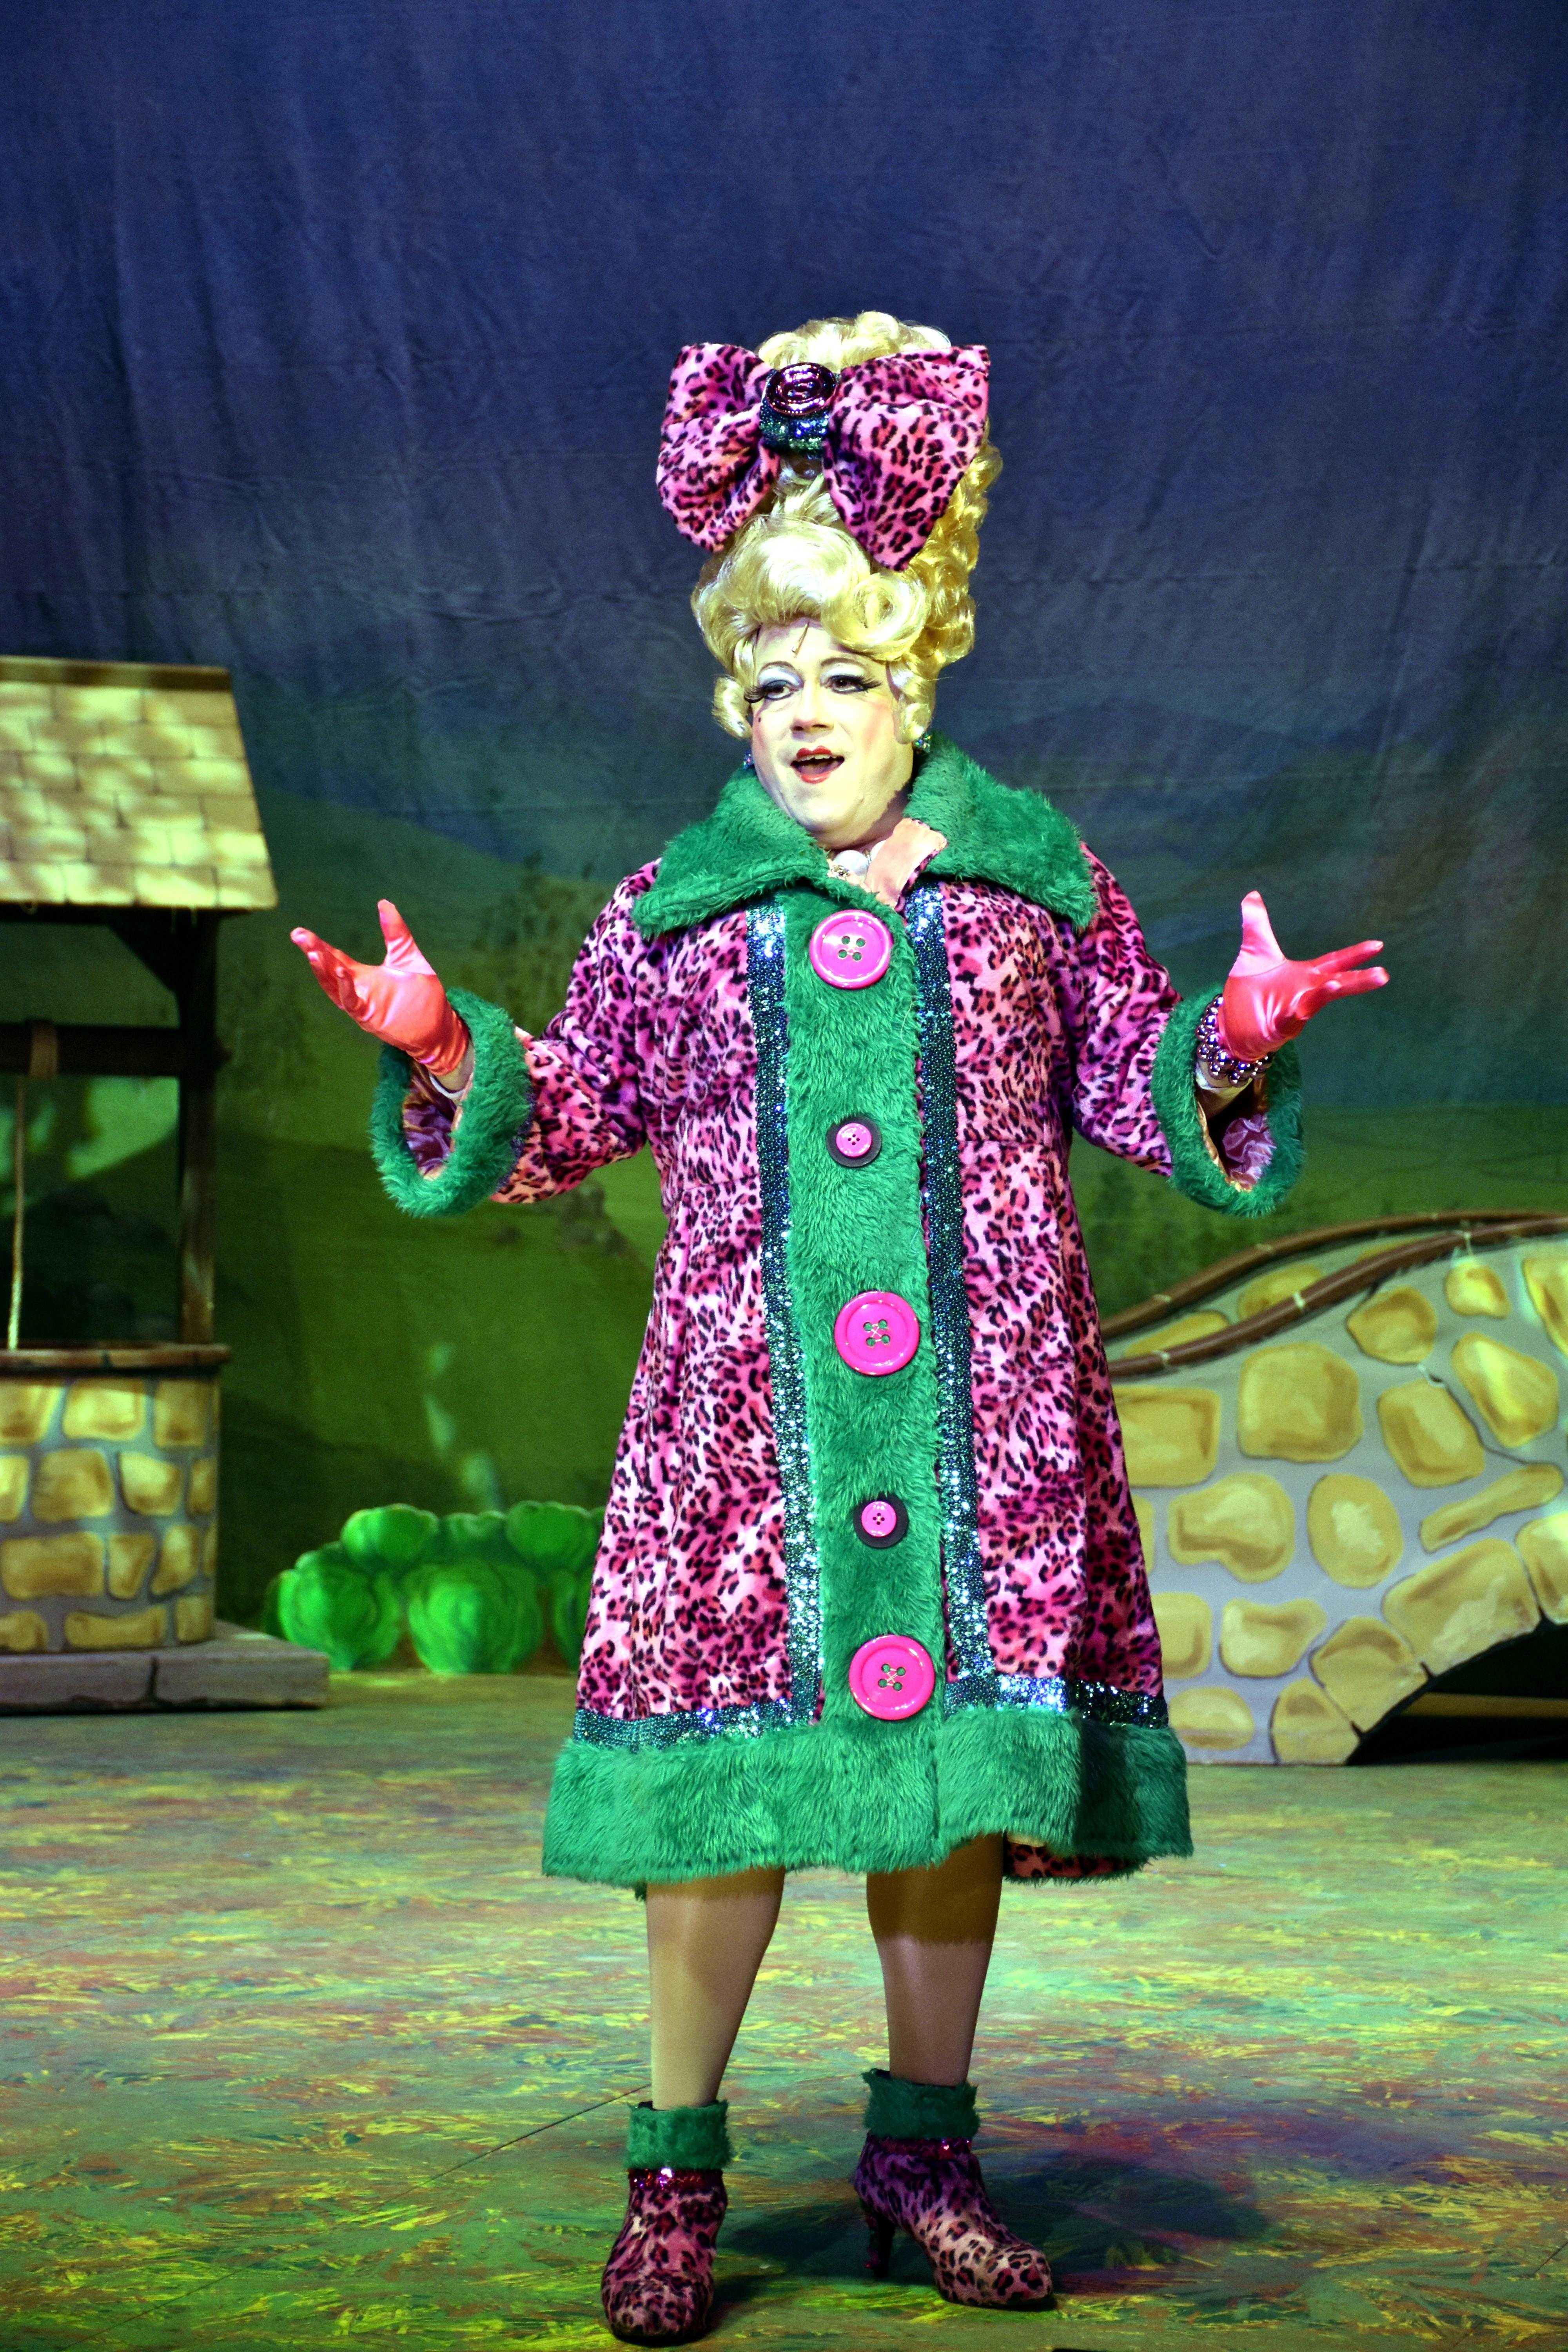 Pantomime Jack and the Beanstalk, Christmas 2015. Anvil Theatre, Basingstoke. Mark Little (Neighbours) Mark Rhodes (Sam and Mark's Big Friday Wind-Up) Melanie Walters (Gavin and Stacey) Chris Pizzey (The Basil Brush Show) plus Philip Meeks as Dame Trott and Michael Chance as The King When Dame Trott sends her son Jack to market, little do they know that swapping Daisy the cow for a handful of beans will result in an overgrown beanstalk, a hungry giant, wicked henchman and fabulous golden treasure. Photograph By: Sean Dillow. www.TheBigCheesePhotography.co.uk